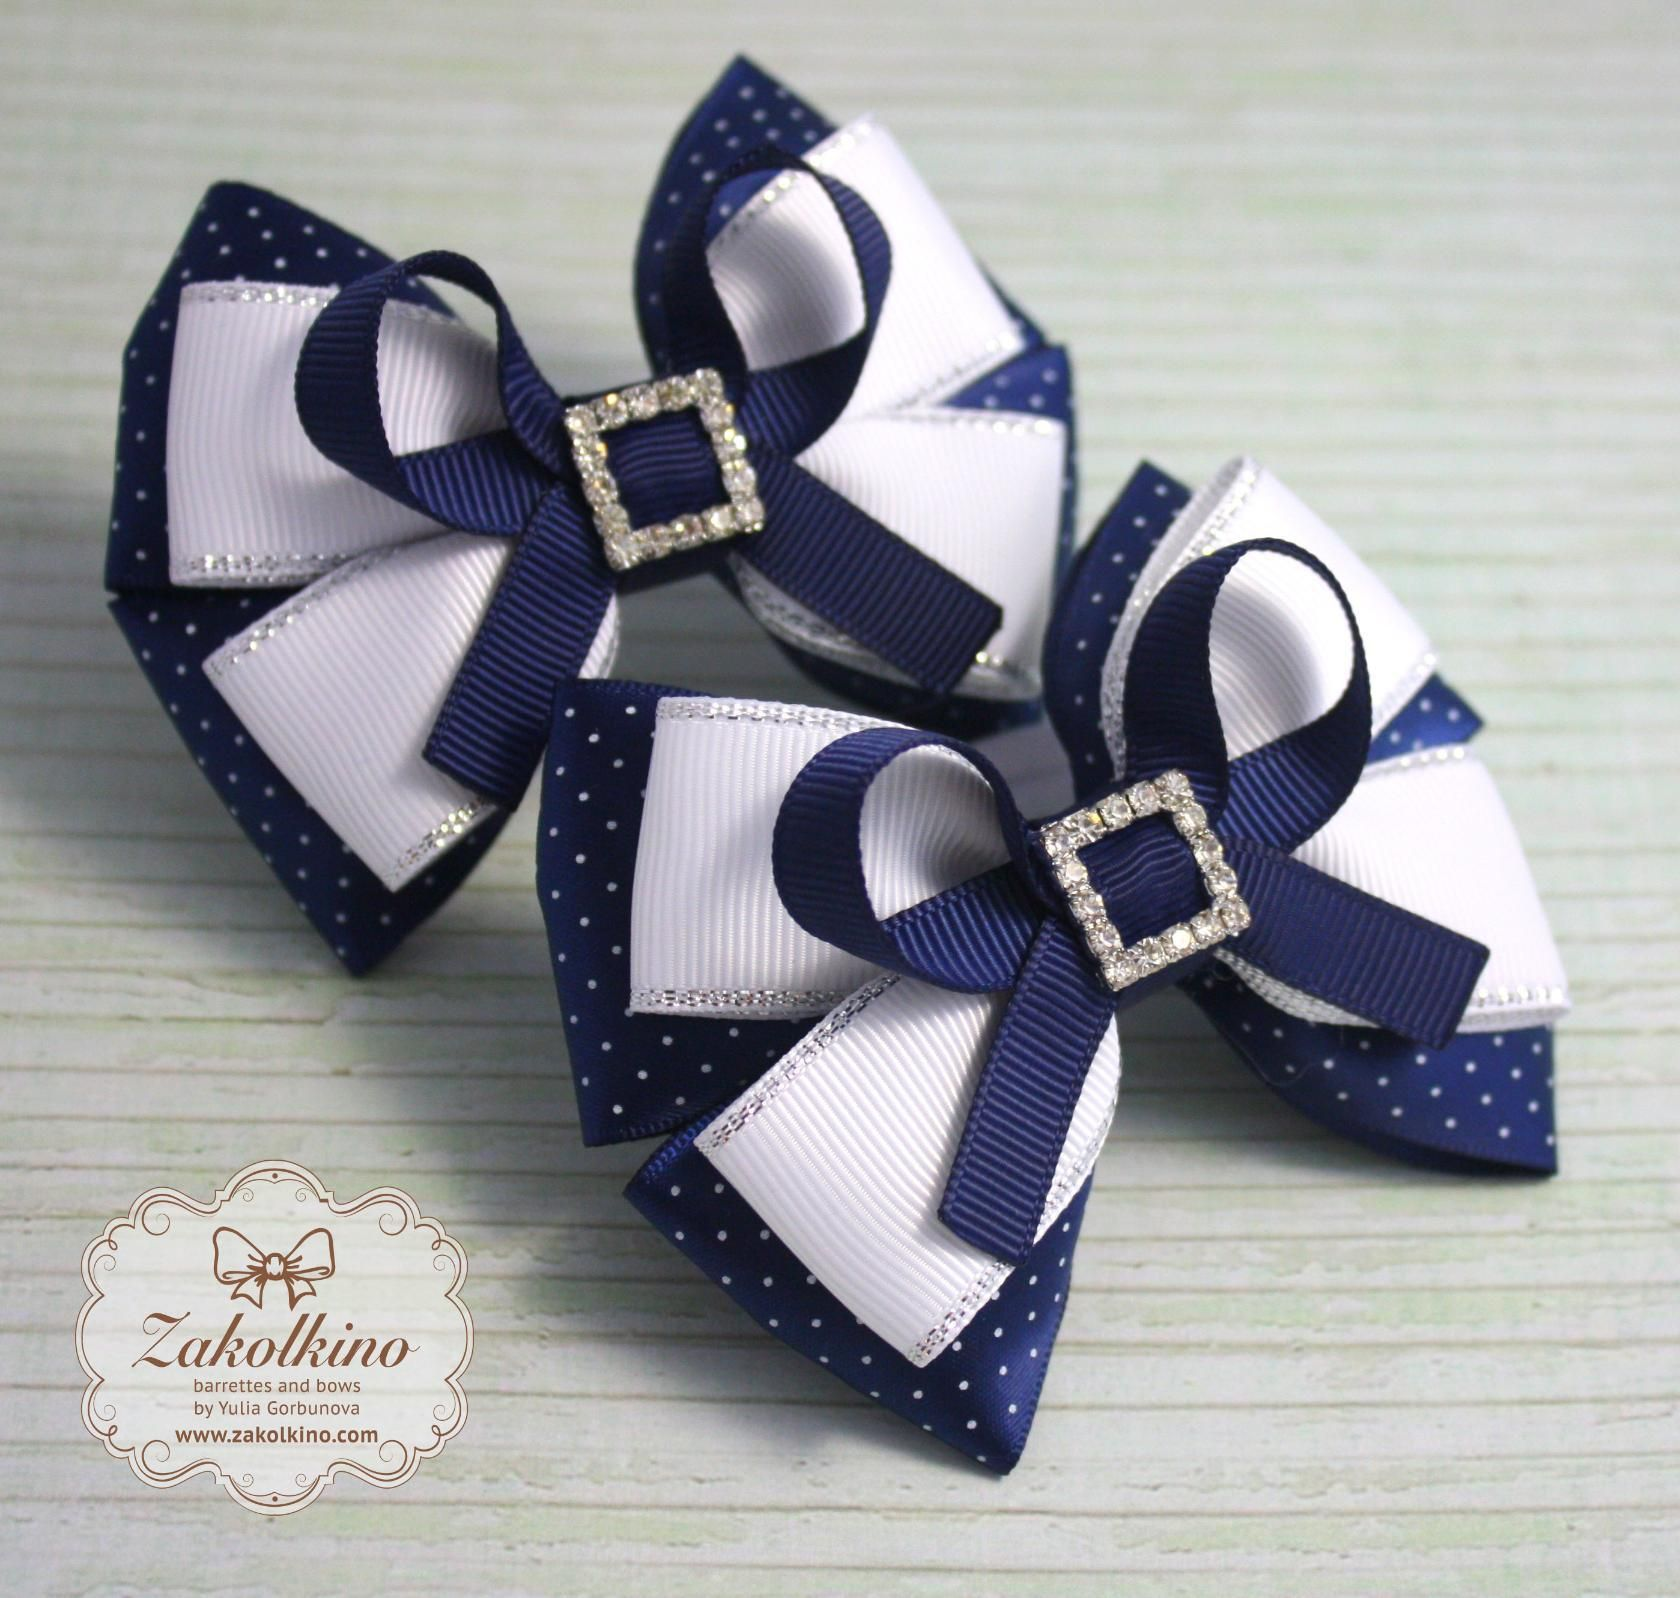 Football Bow with custom name and number  Football Bows  Little Sister Football Bow  Football Hair Bow  Football Accessory  Football S